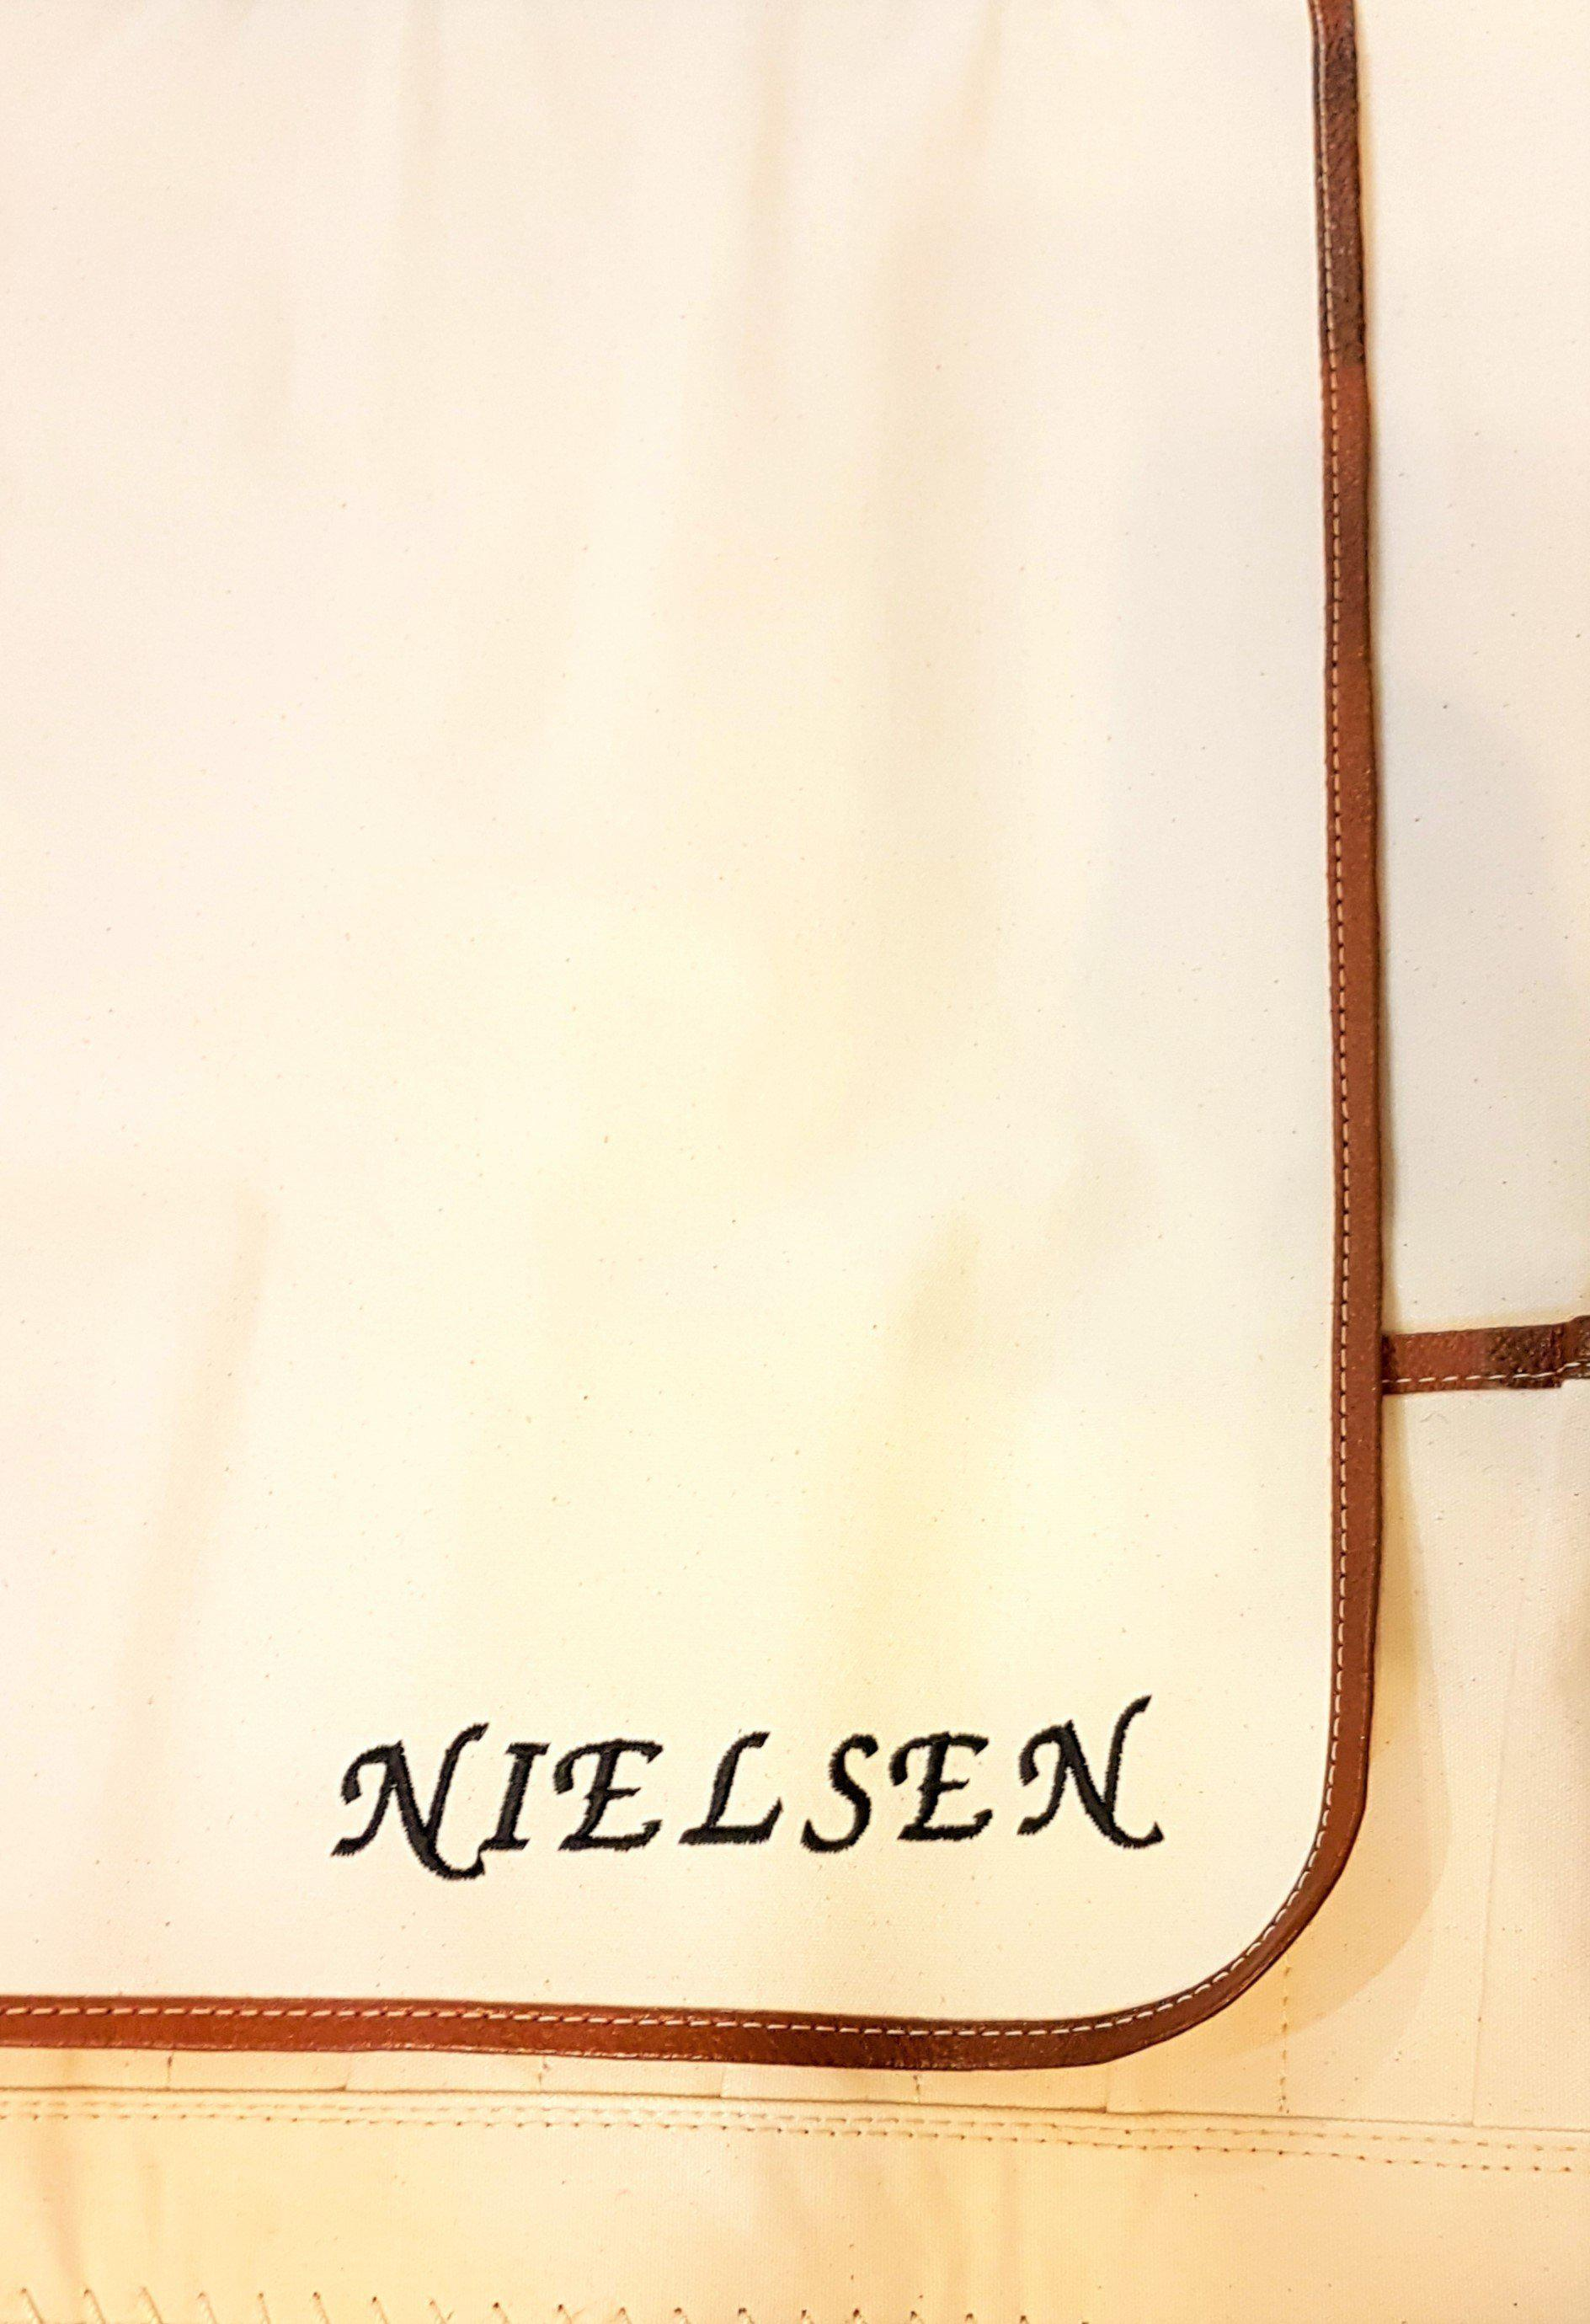 Personalized leather chef knife bag for gifts